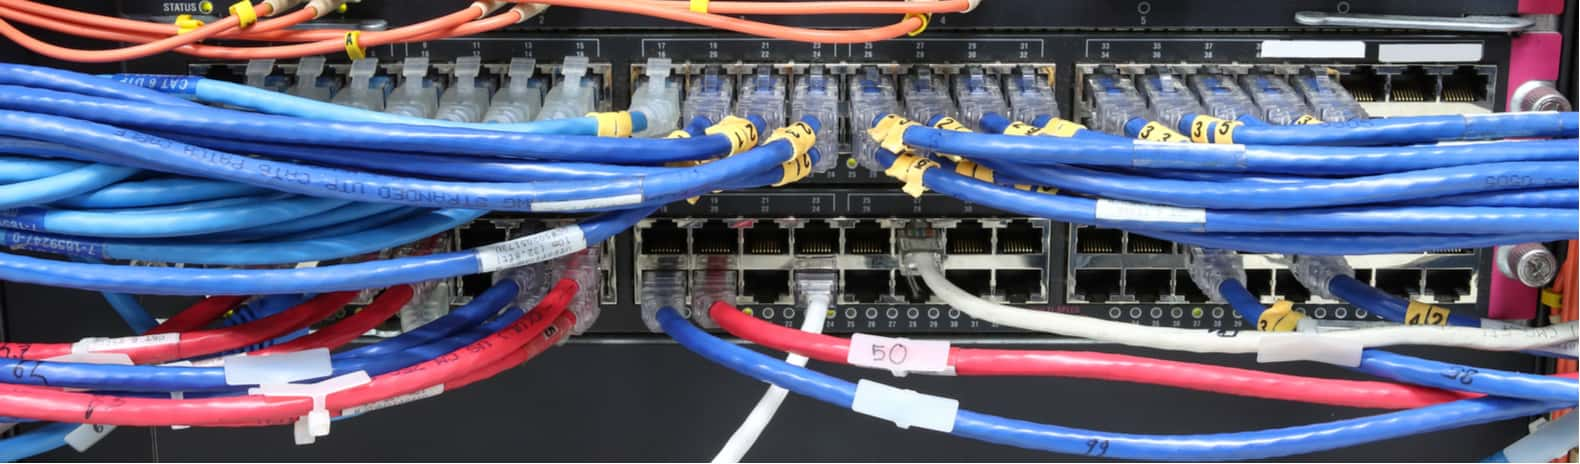 Network Administration Cables